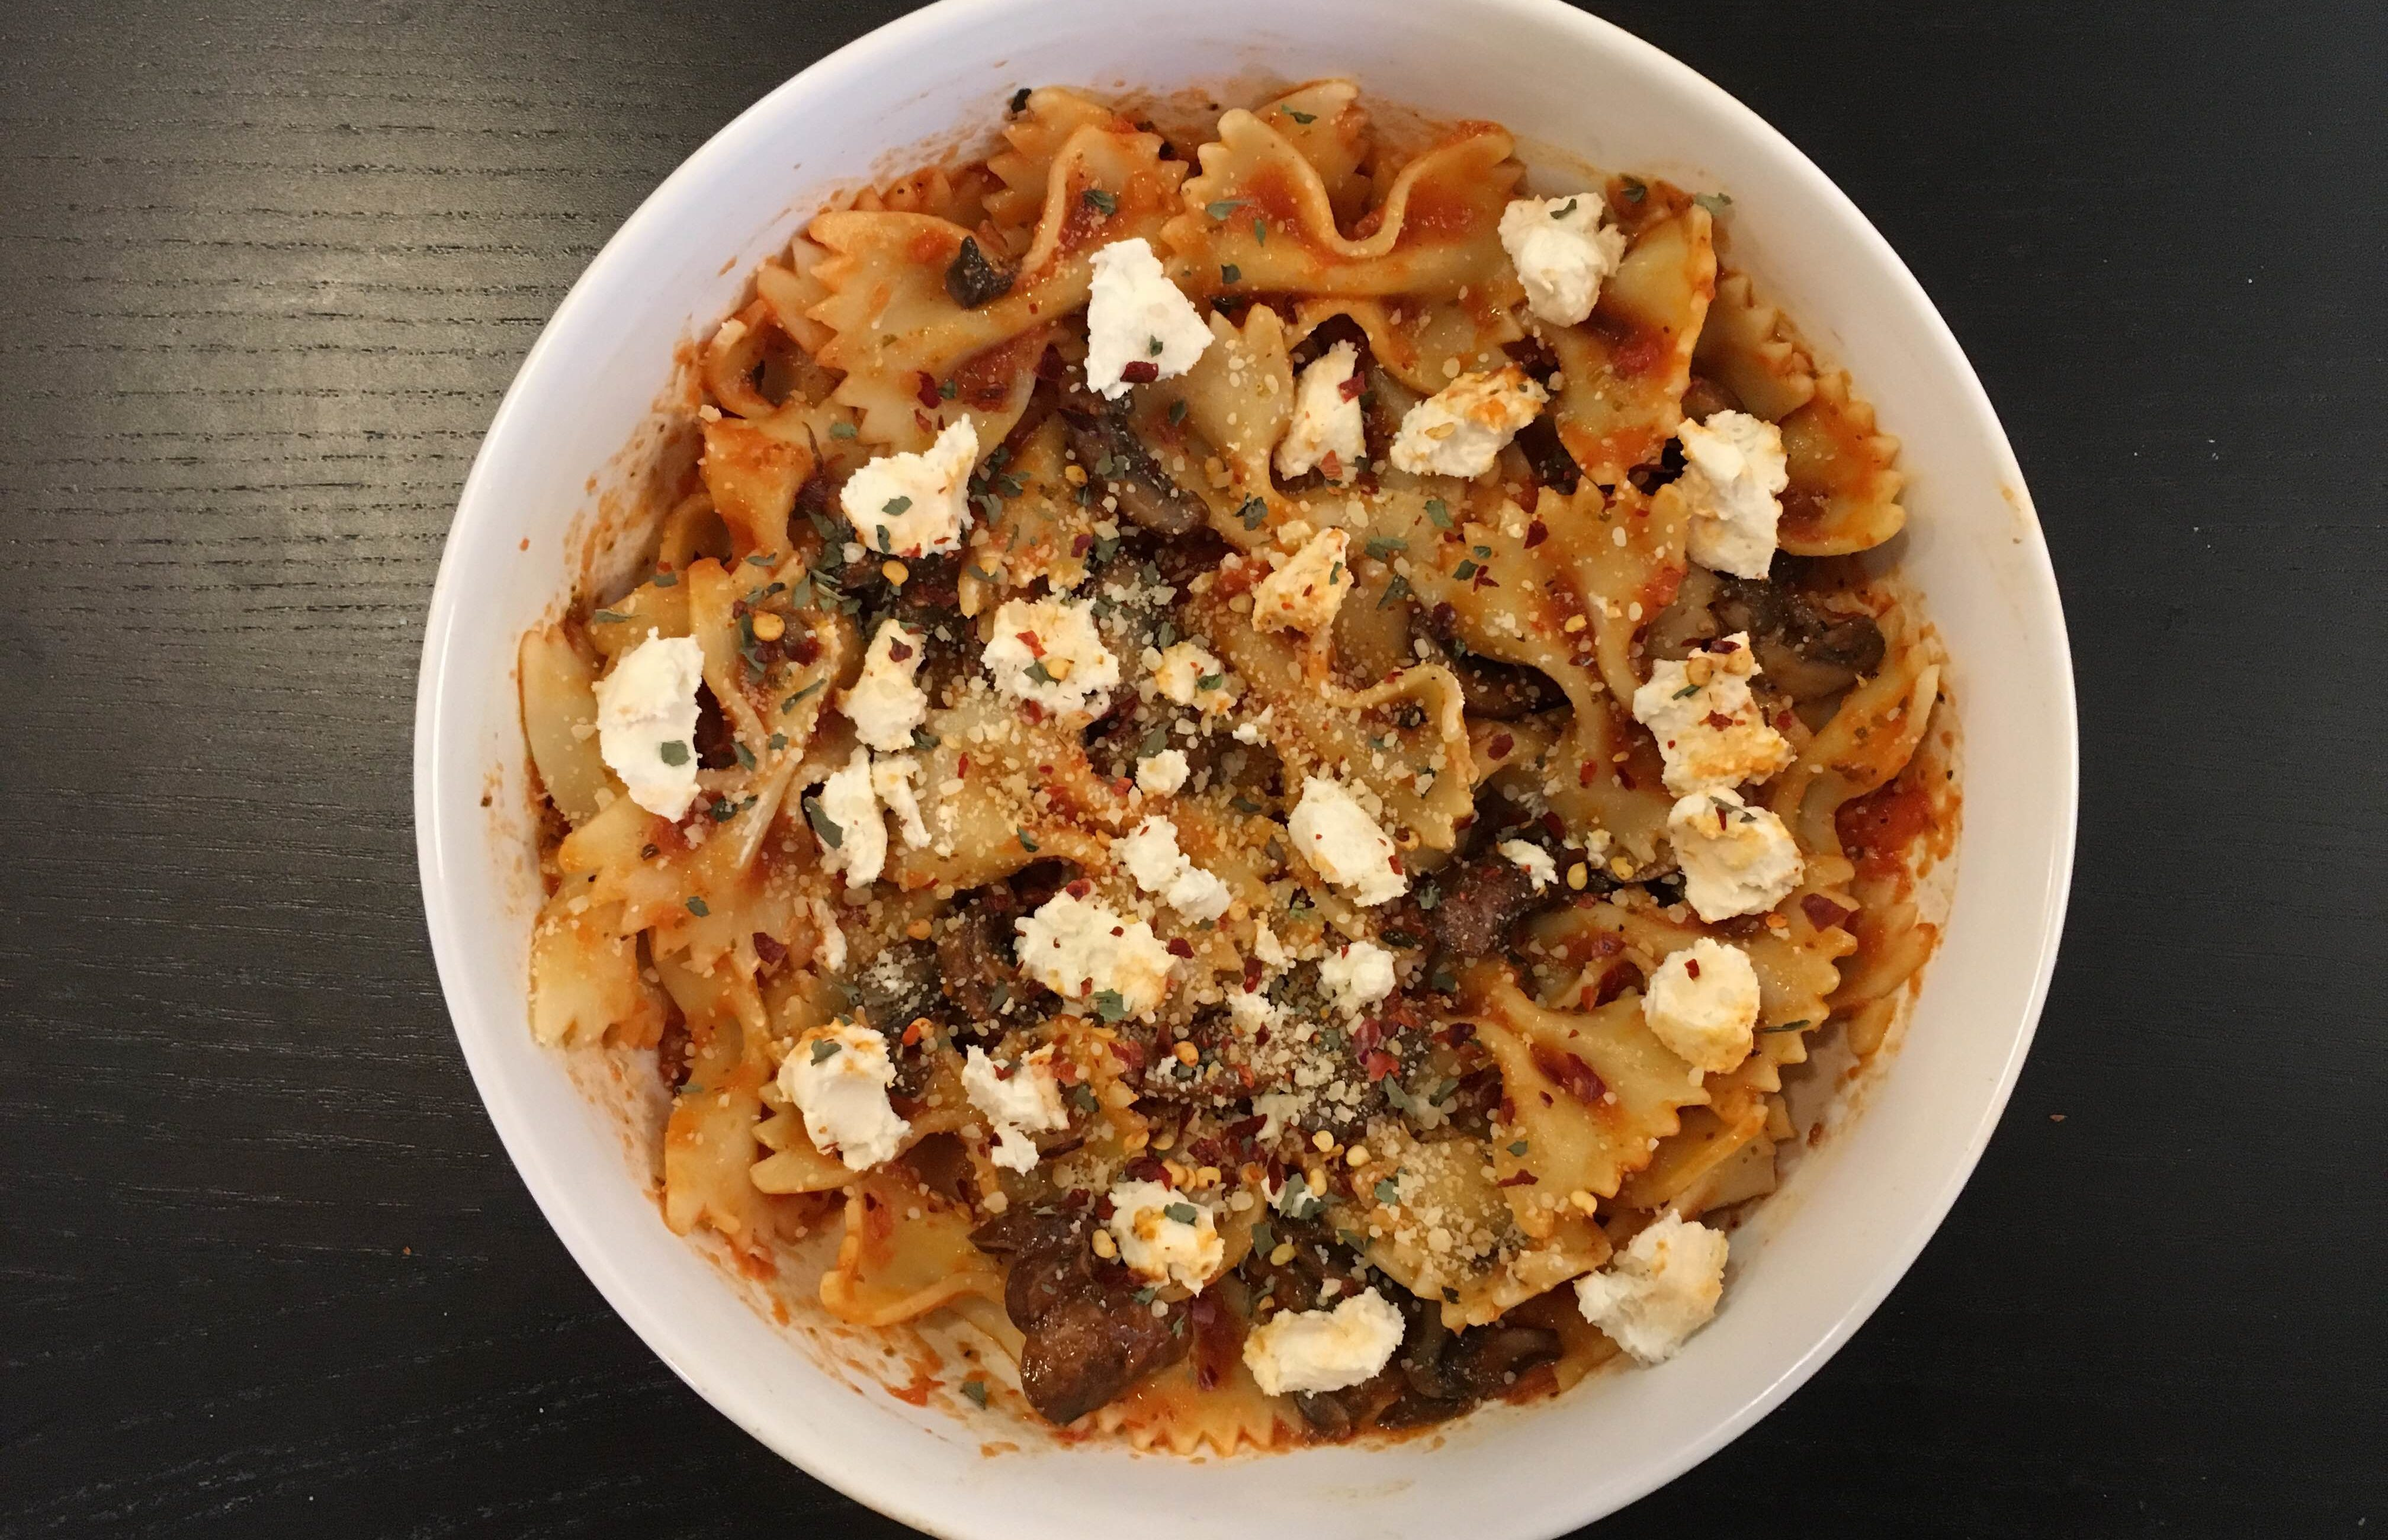 Mushroom and goat cheese farfalle